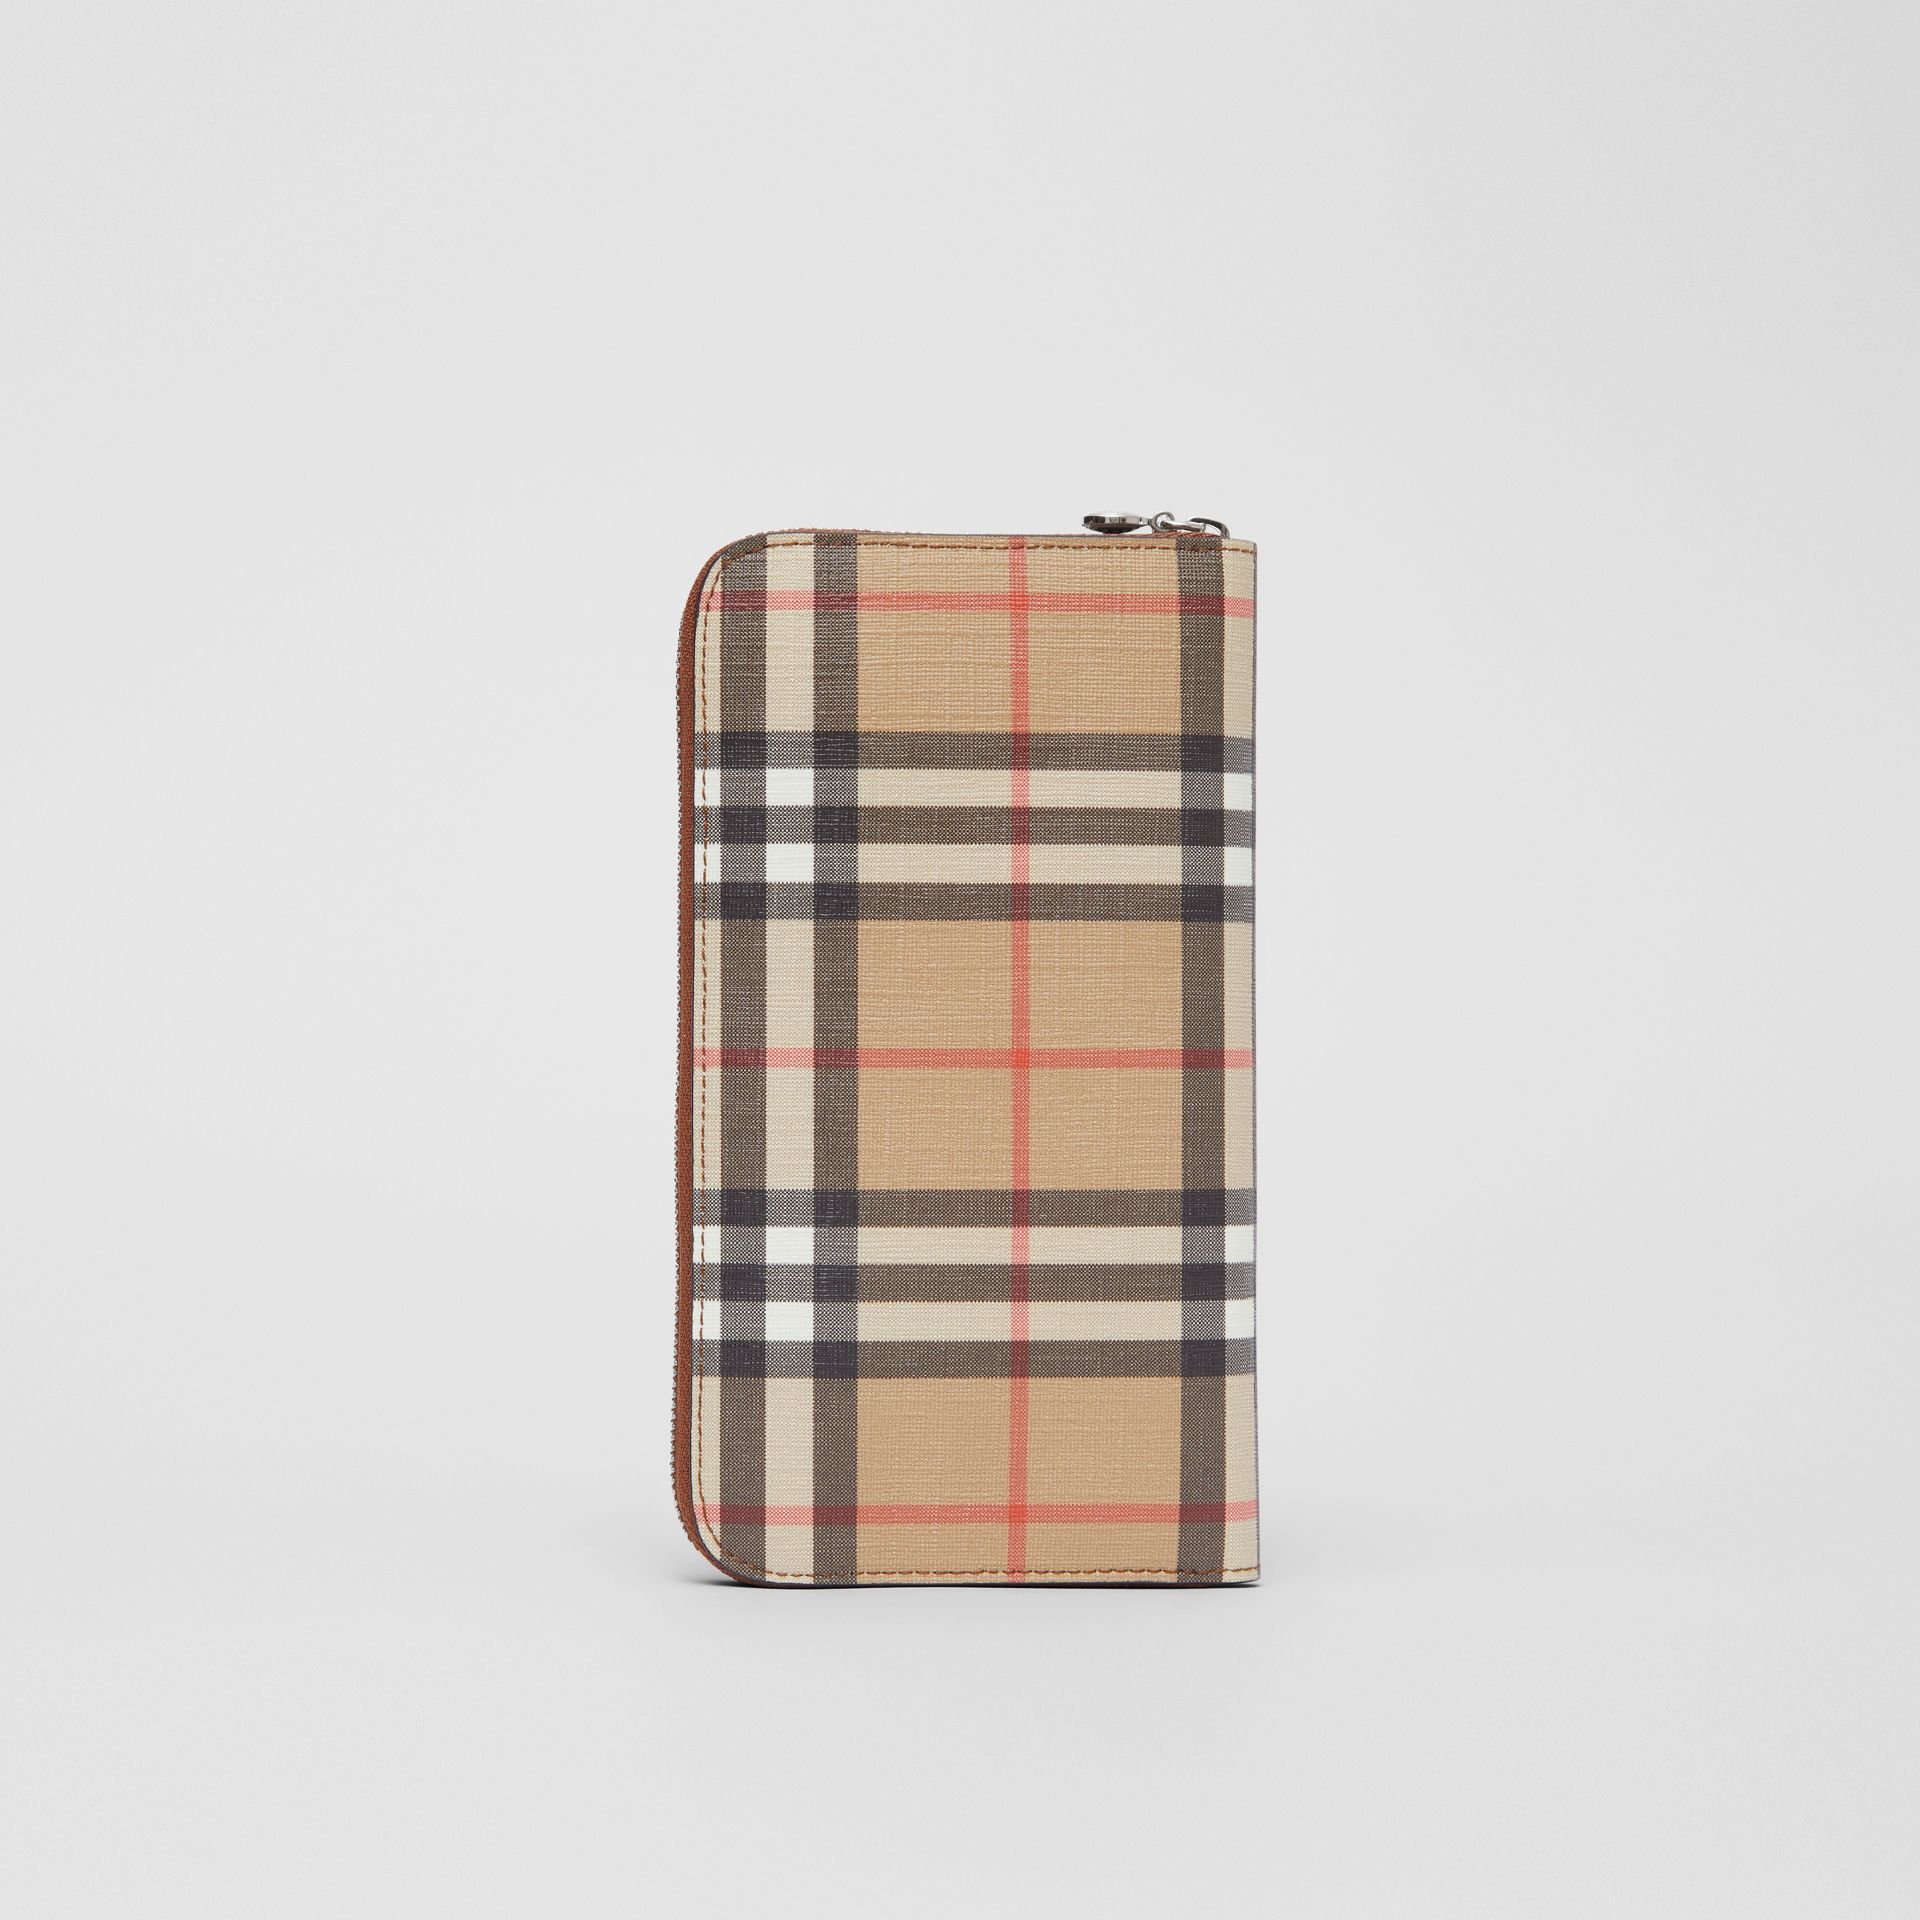 Vintage Check E-canvas Ziparound Wallet in Malt Brown - Women | Burberry Hong Kong S.A.R - gallery image 4